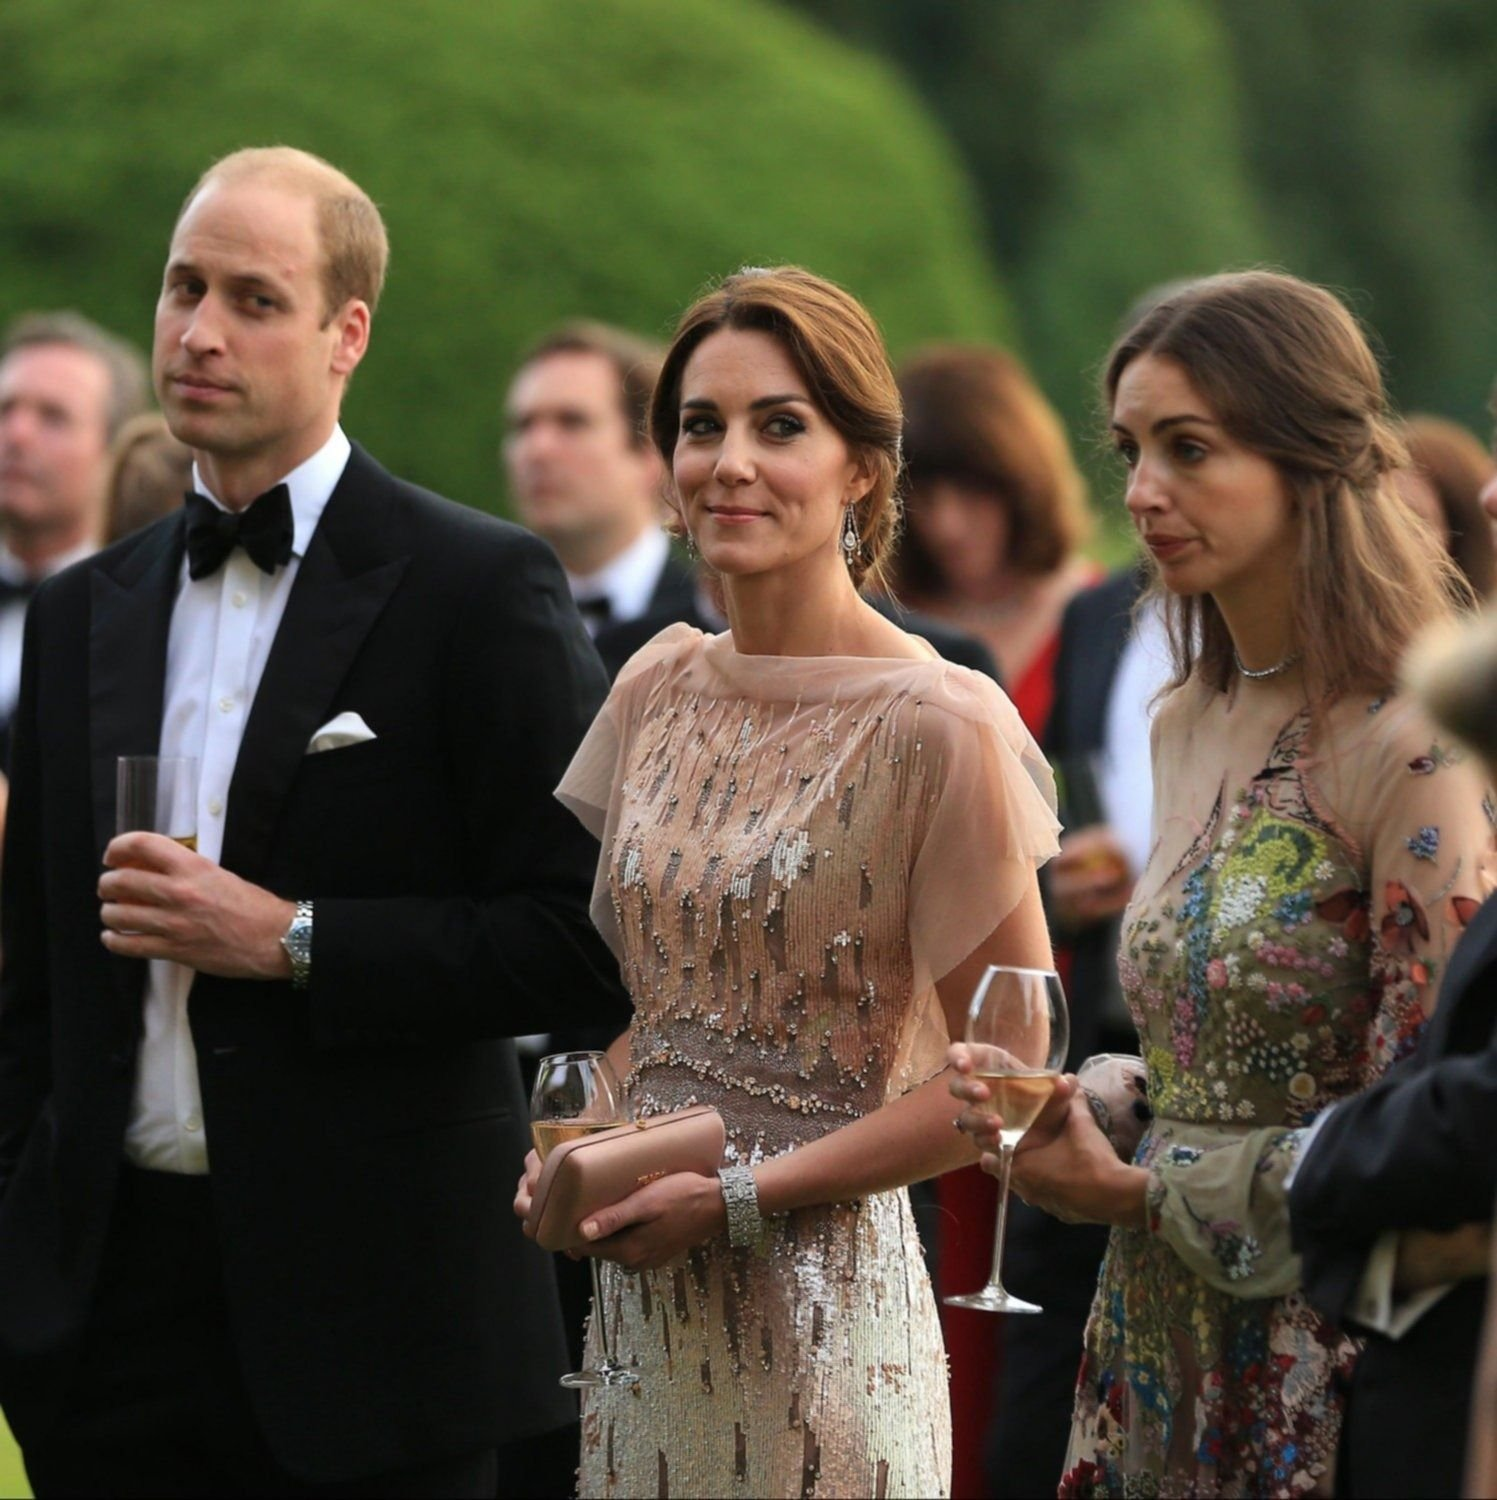 La medida del Príncipe William ante rumores de infidelidad hacia Kate Middleton